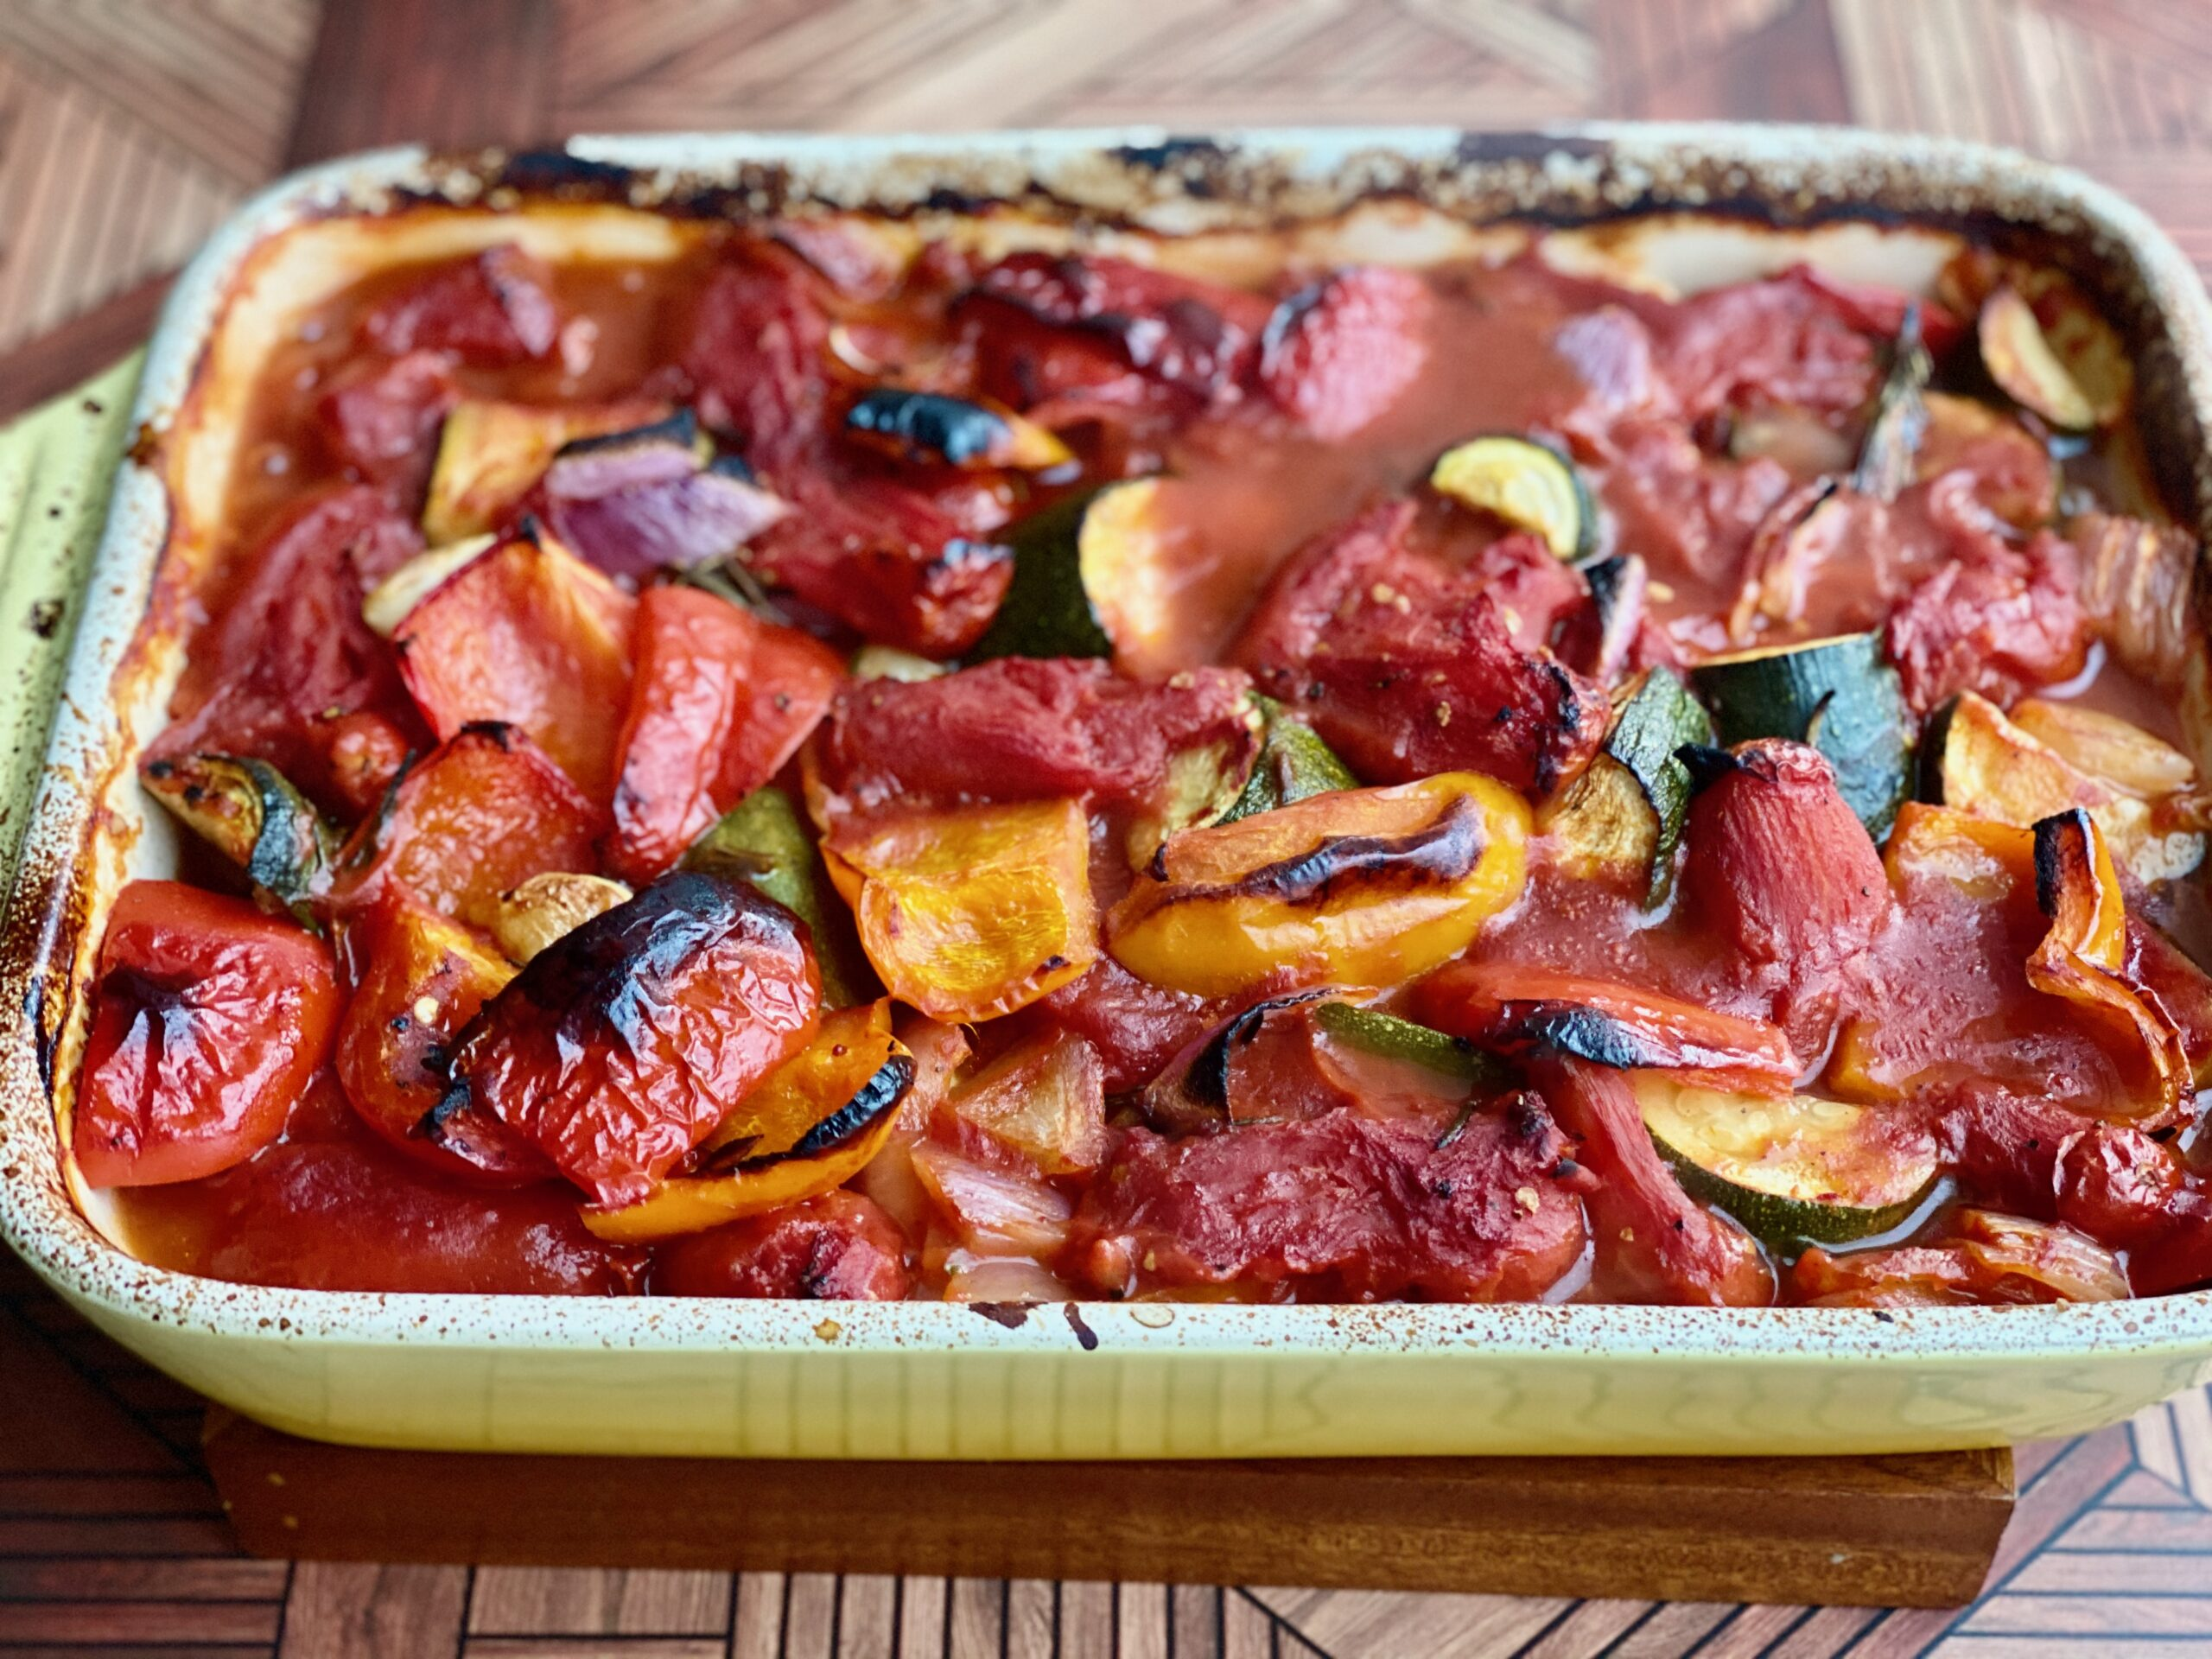 An image of a pan full of charred, roasted vegetables